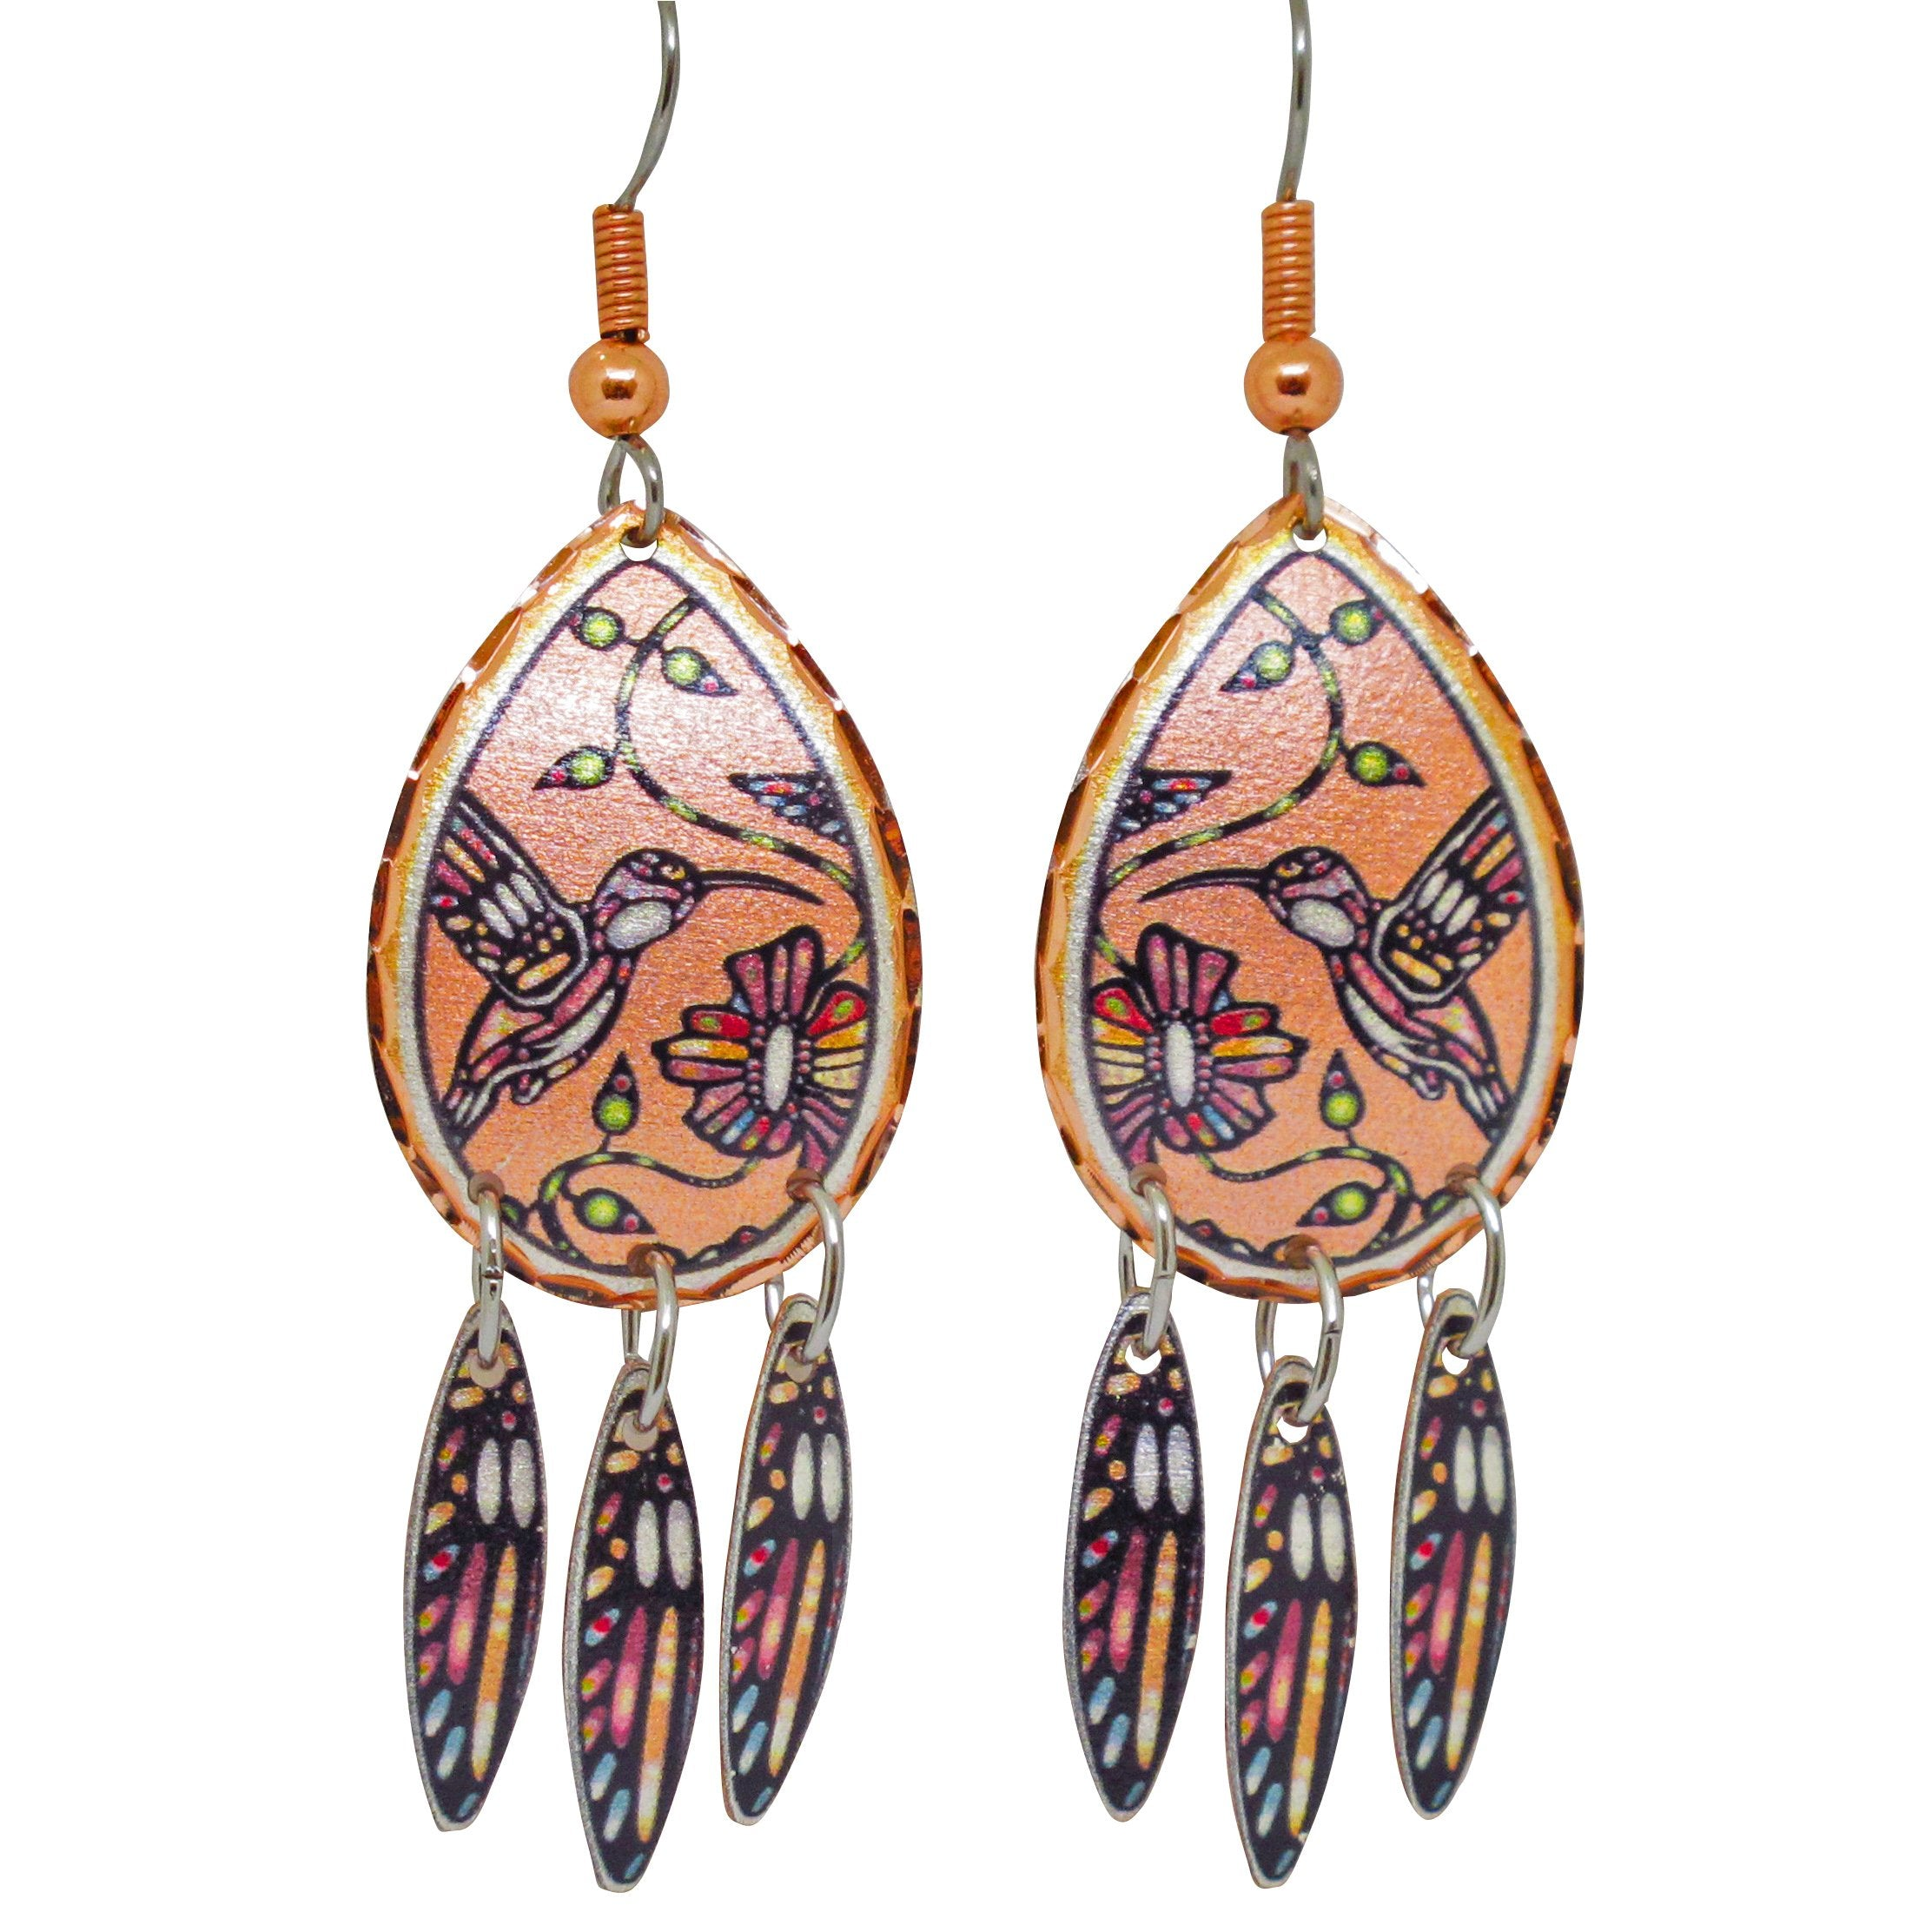 John Rombough Hummingbird  Artist Collection Copper Earrings